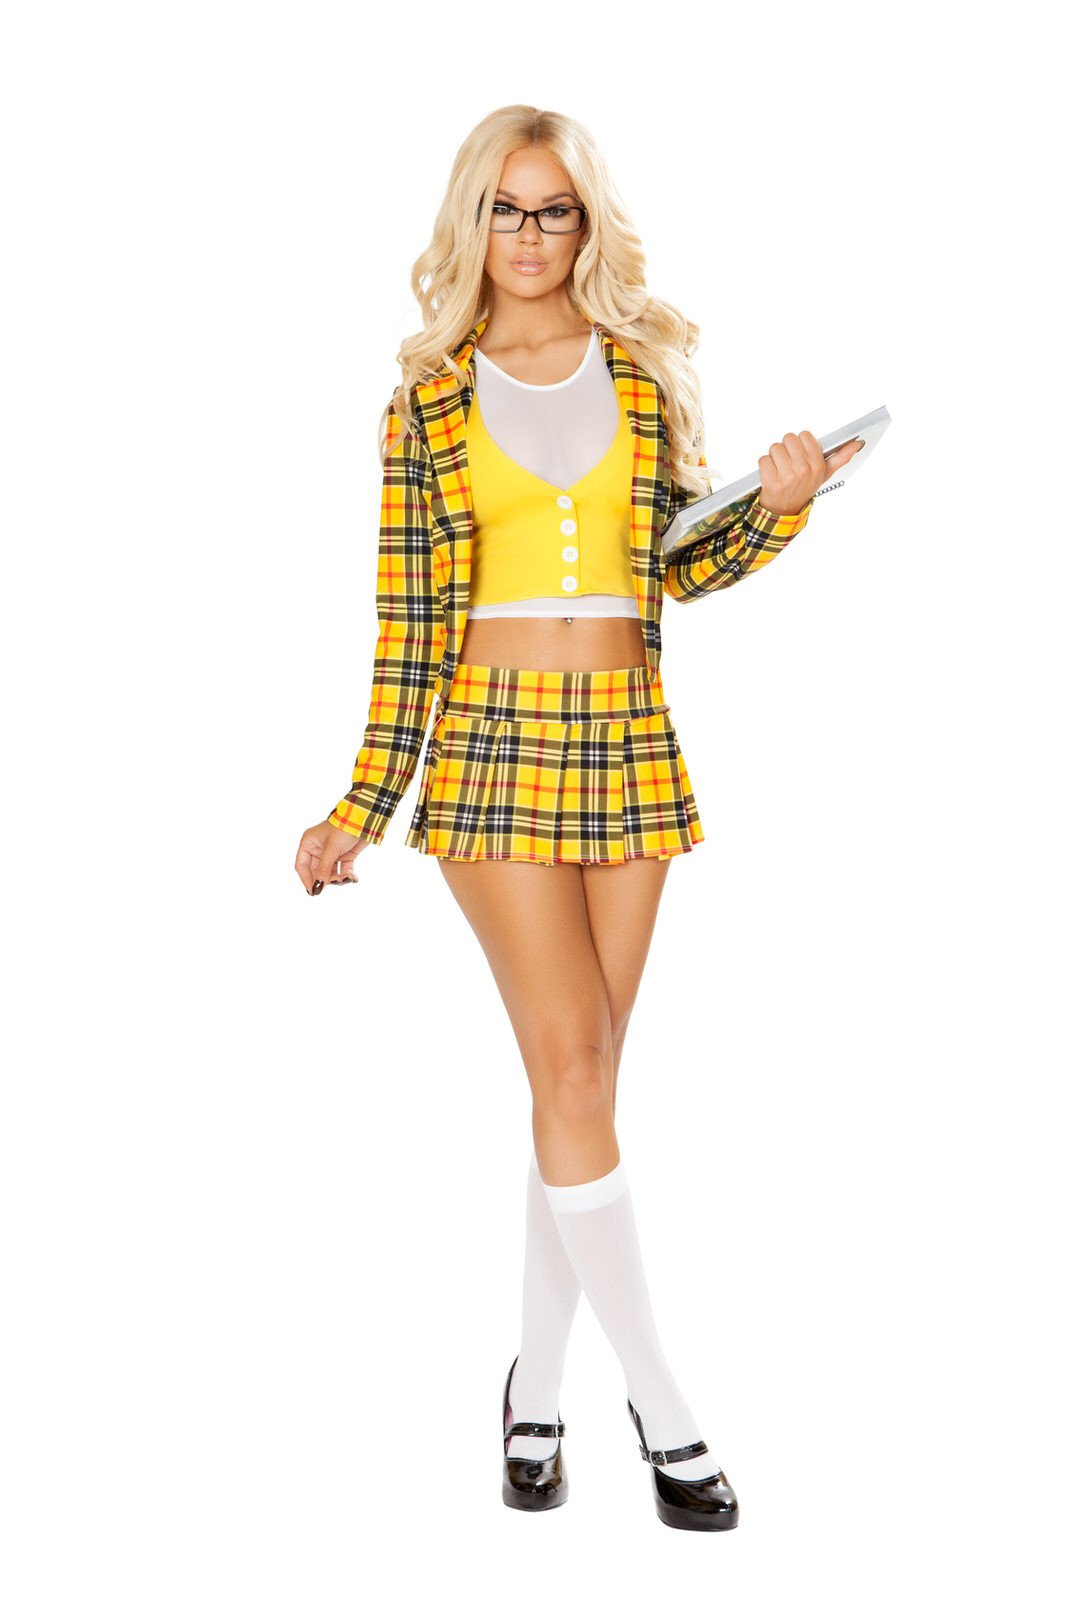 4830 - 3pc School Girl without a Clue